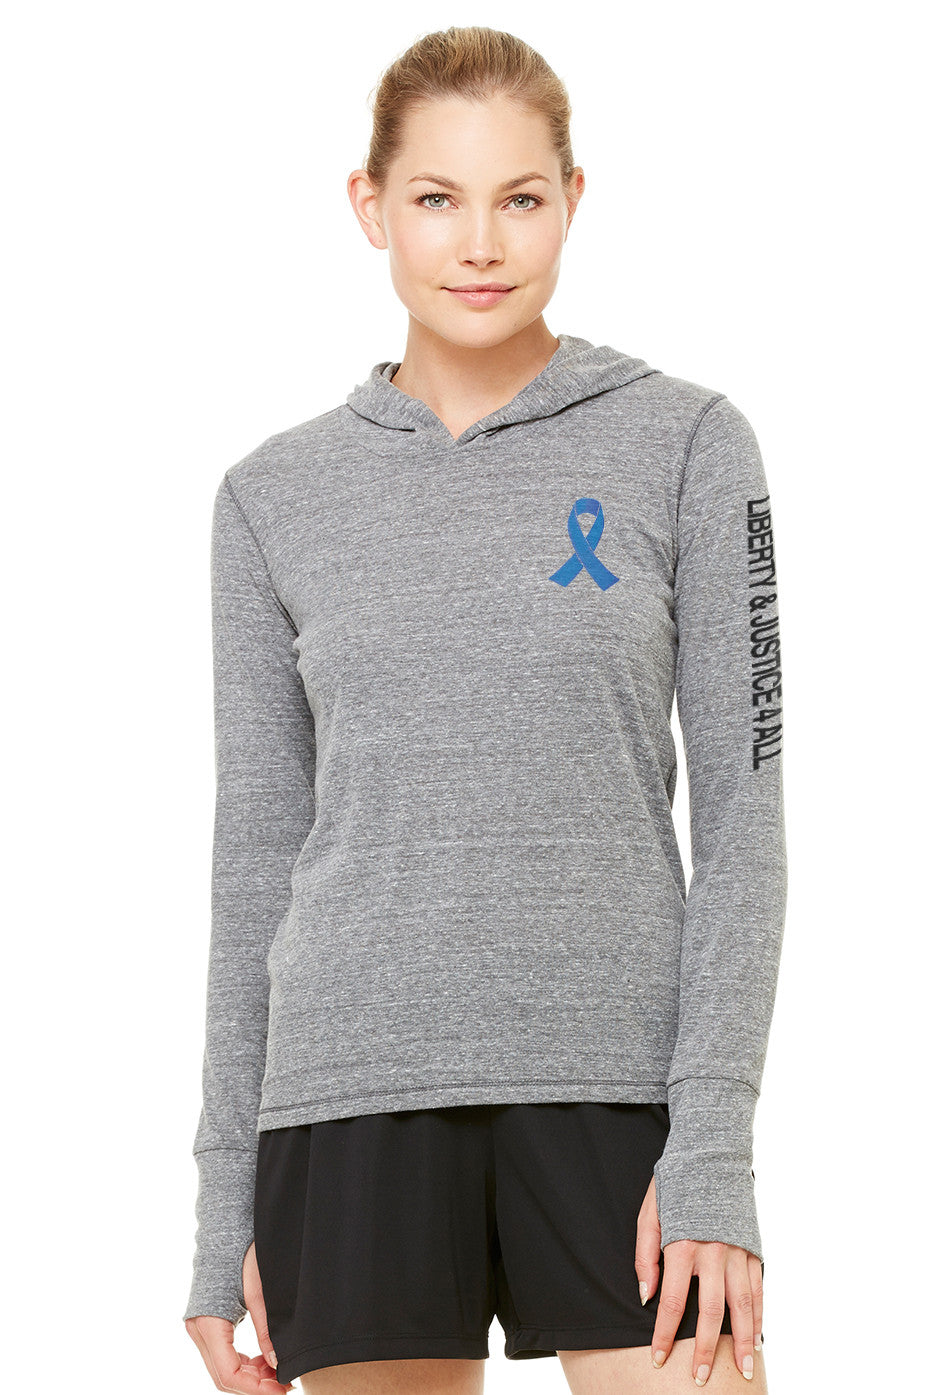 Liberty & Justice Women's Performance Triblend Long Sleeve Hooded Pullover ACLU Ribbon